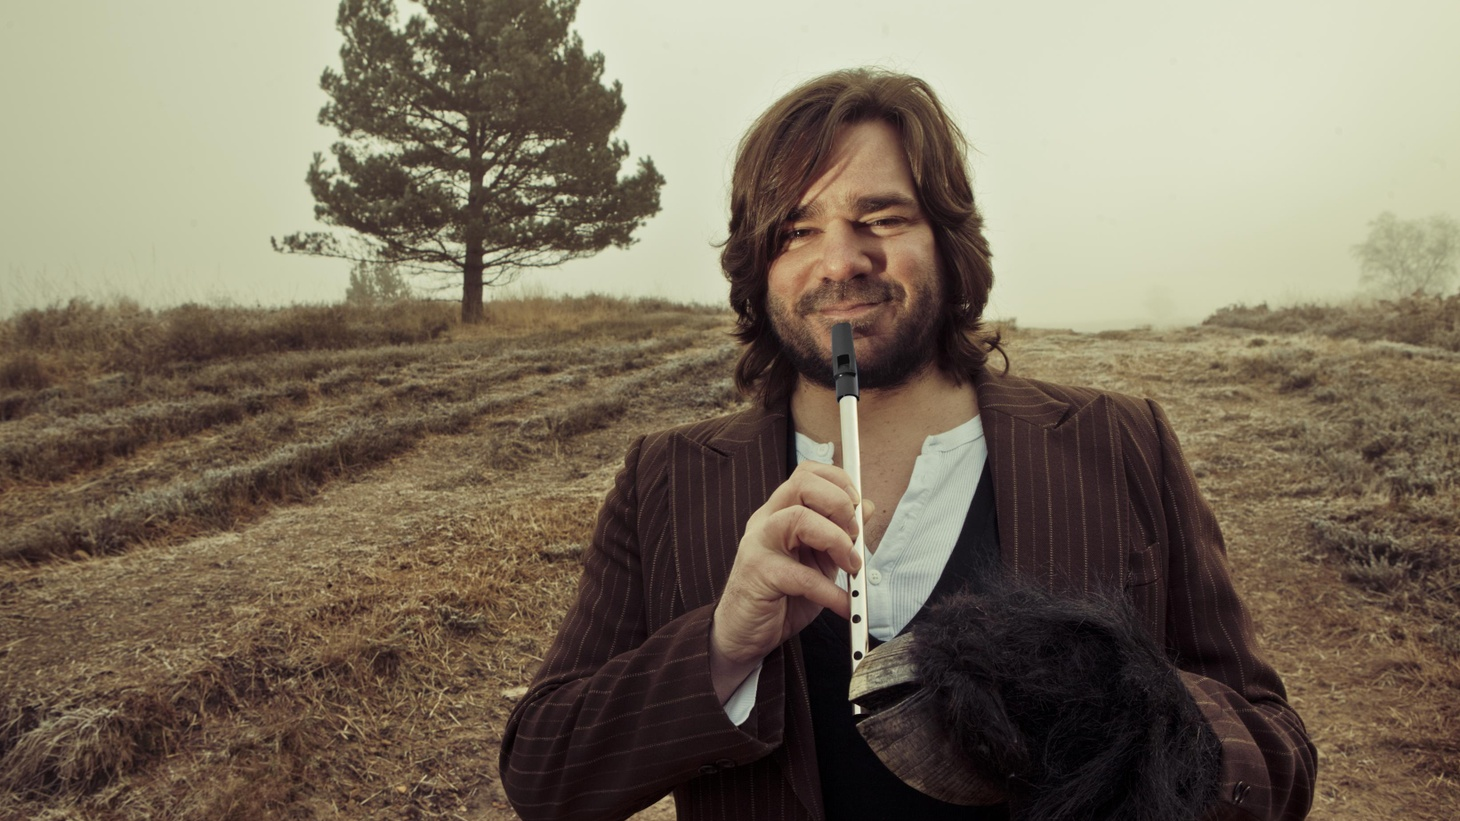 Working within an orchestrated folk-rock idiom, Matt Berry's influences seem decidedly British, with echoes of Mike Oldfield, the Moody Blues and the soundtrack to The Wicker Man wafting through his tunes.